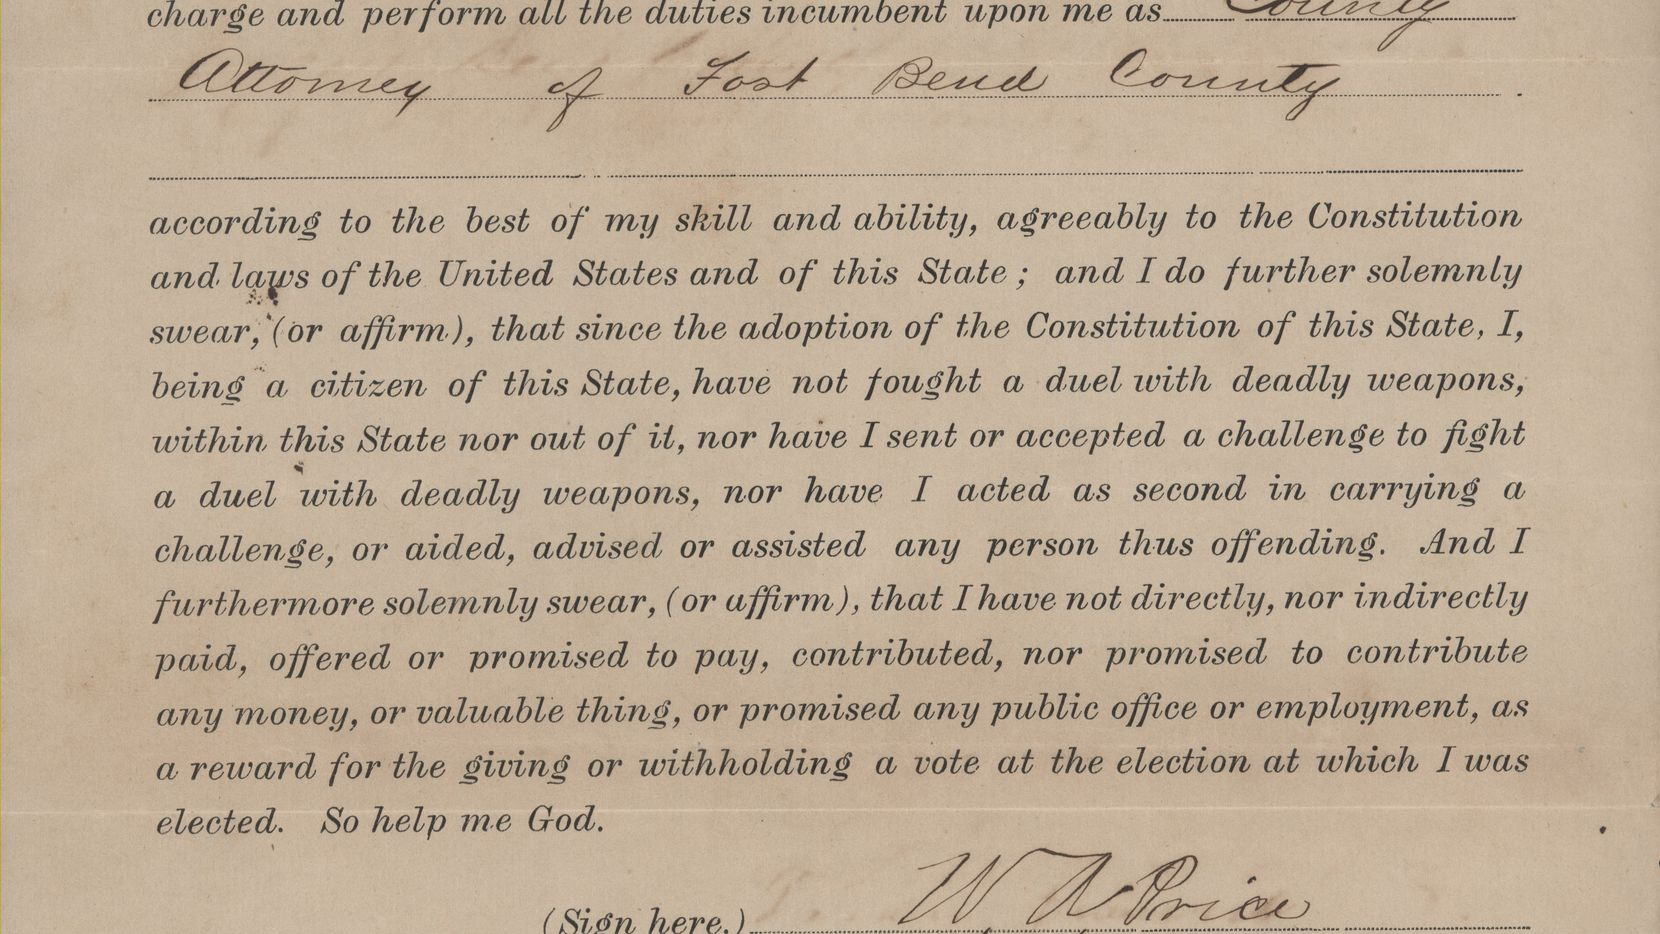 William Price's oath of office for district attorney of Fort Bend County, 1876.